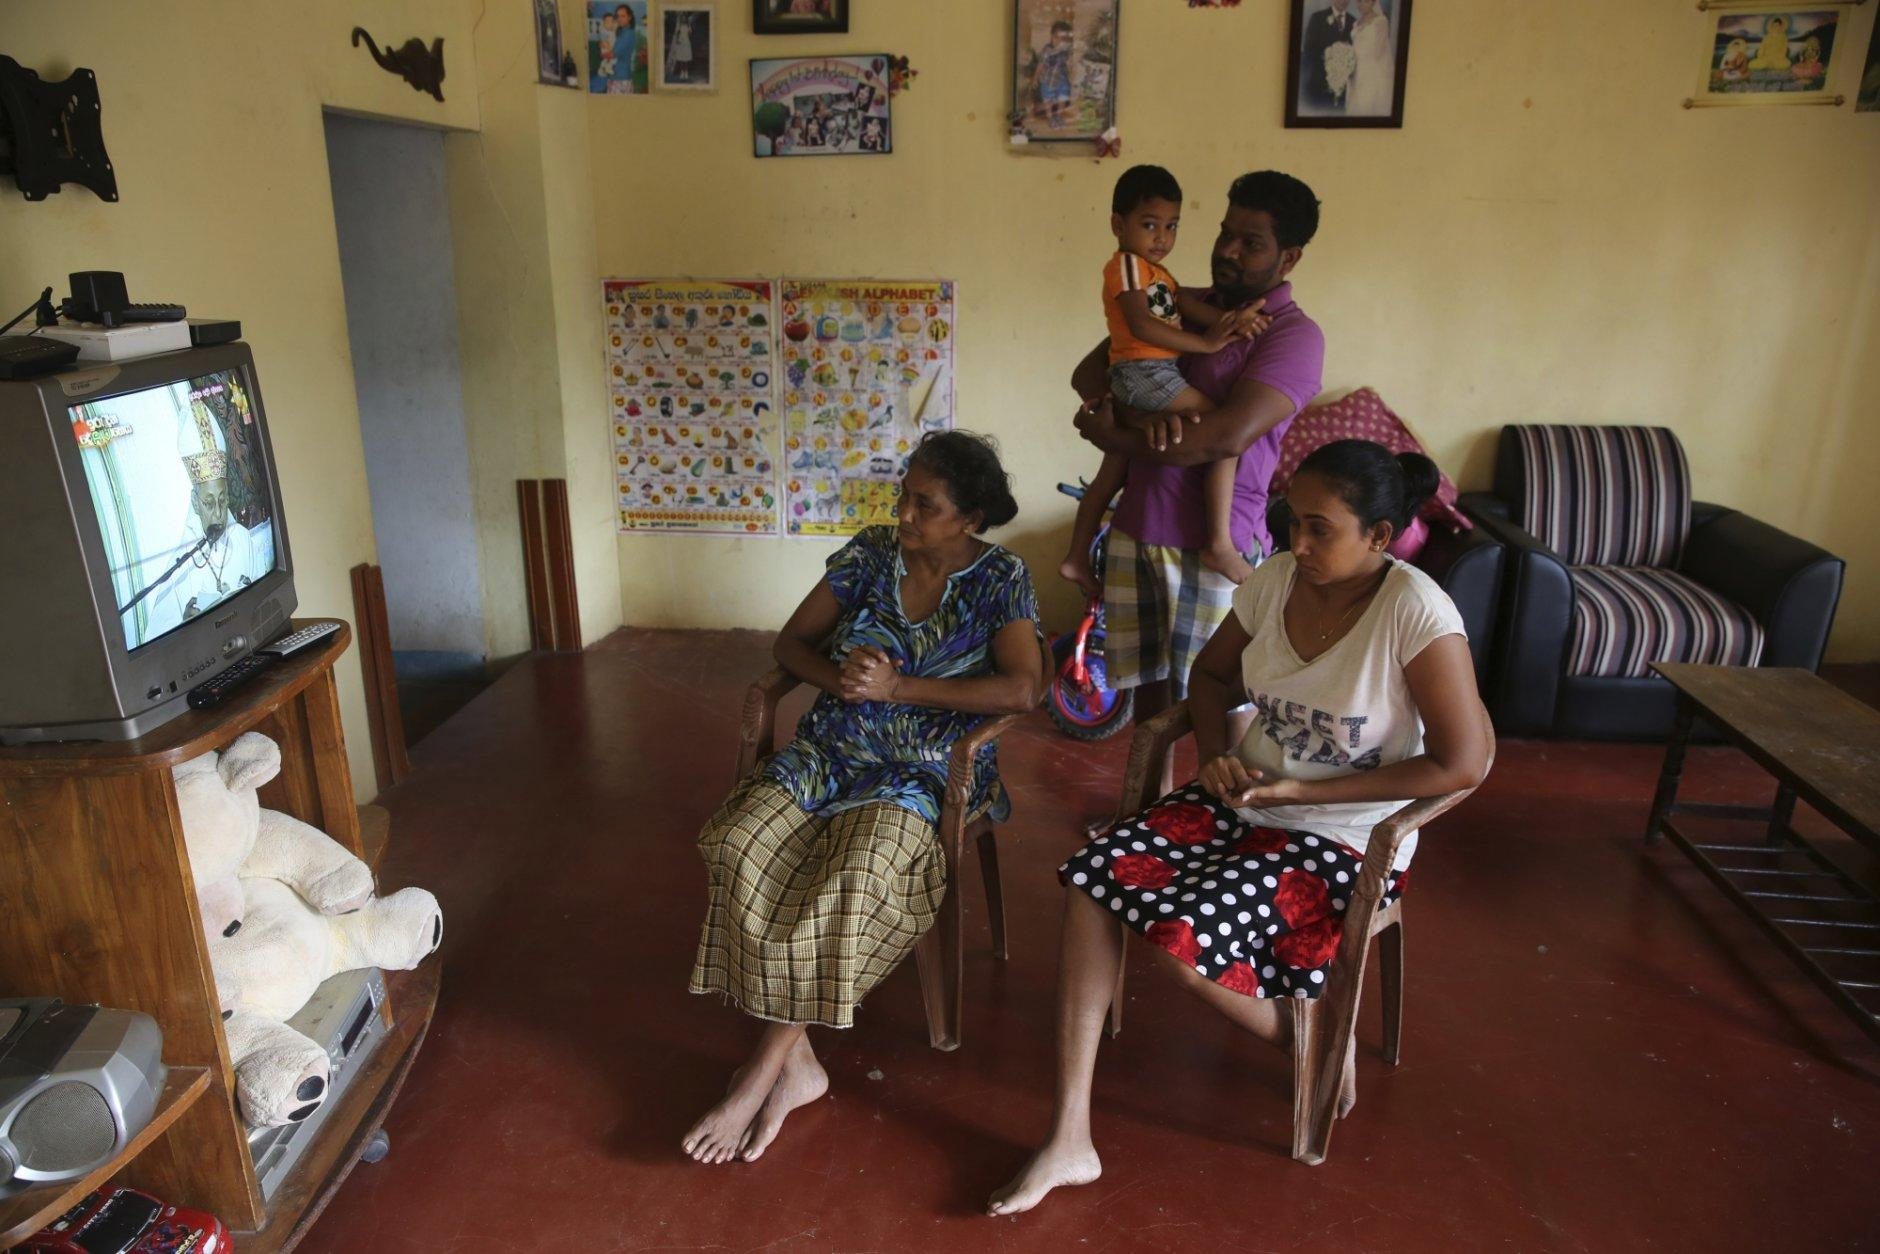 A Sri Lankan Christian catholic family watches and prays inside their home watching live transmission of Sri Lankan Archbishop Cardinal Malcolm Ranjith, in Negombo, Sri Lanka, Sunday, April 28, 2019. Sri Lanka's Catholics celebrated Sunday Mass in their homes by a televised broadcast as churches across the island nation shut over fears of militant attacks, a week after the Islamic State-claimed Easter suicide bombings killed over 250 people. (AP Photo/Manish Swarup)